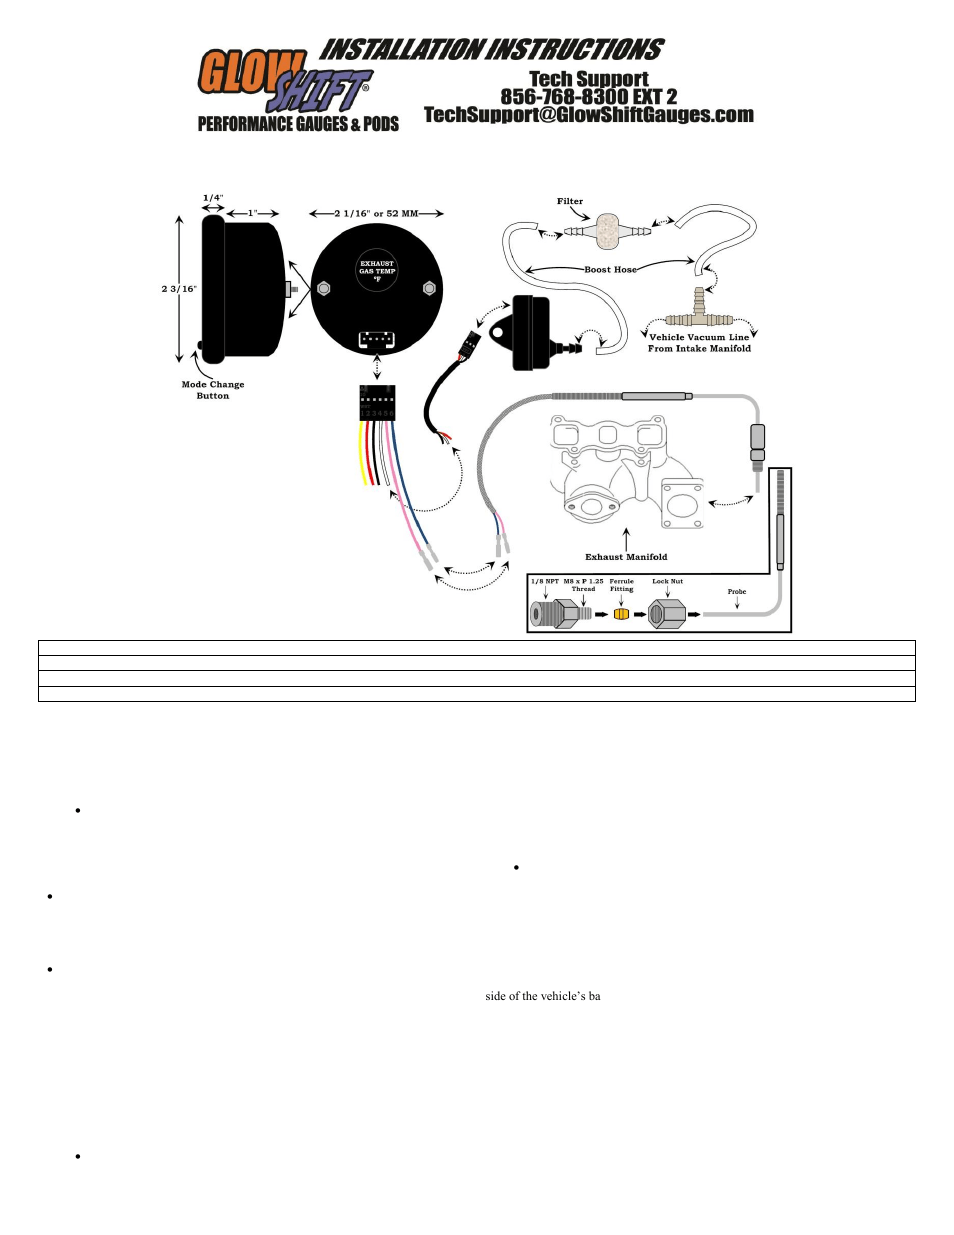 small resolution of glowshift wiring diagram wiring diagram for you kawasaki wiring diagram glowshift gauge wiring diagram simple wiring